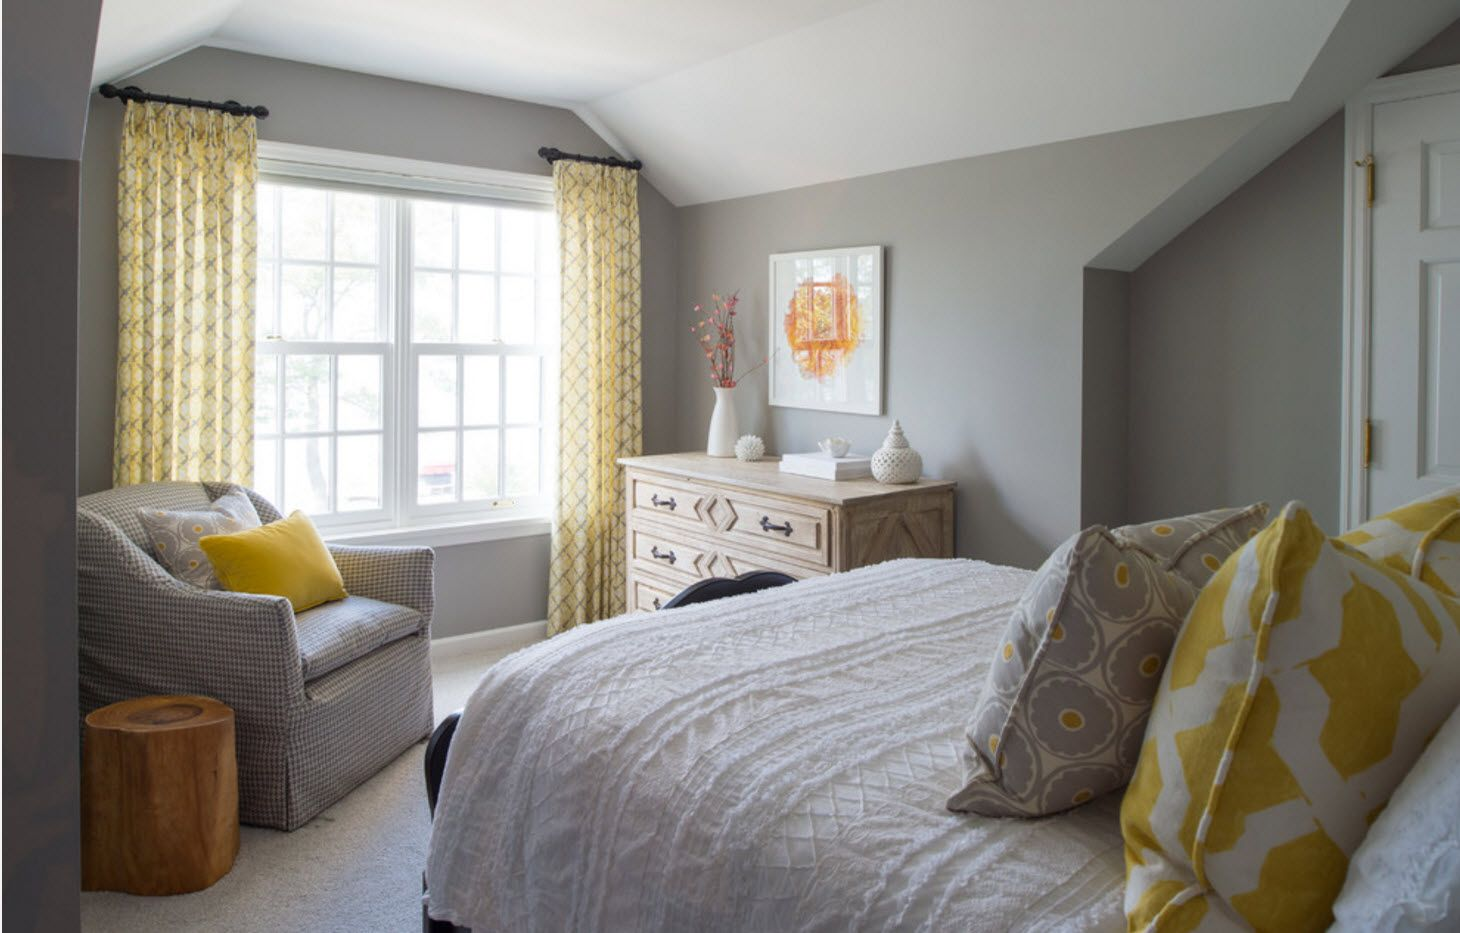 Gray setting of the modern bedroom with accentual yellow tulle curtains